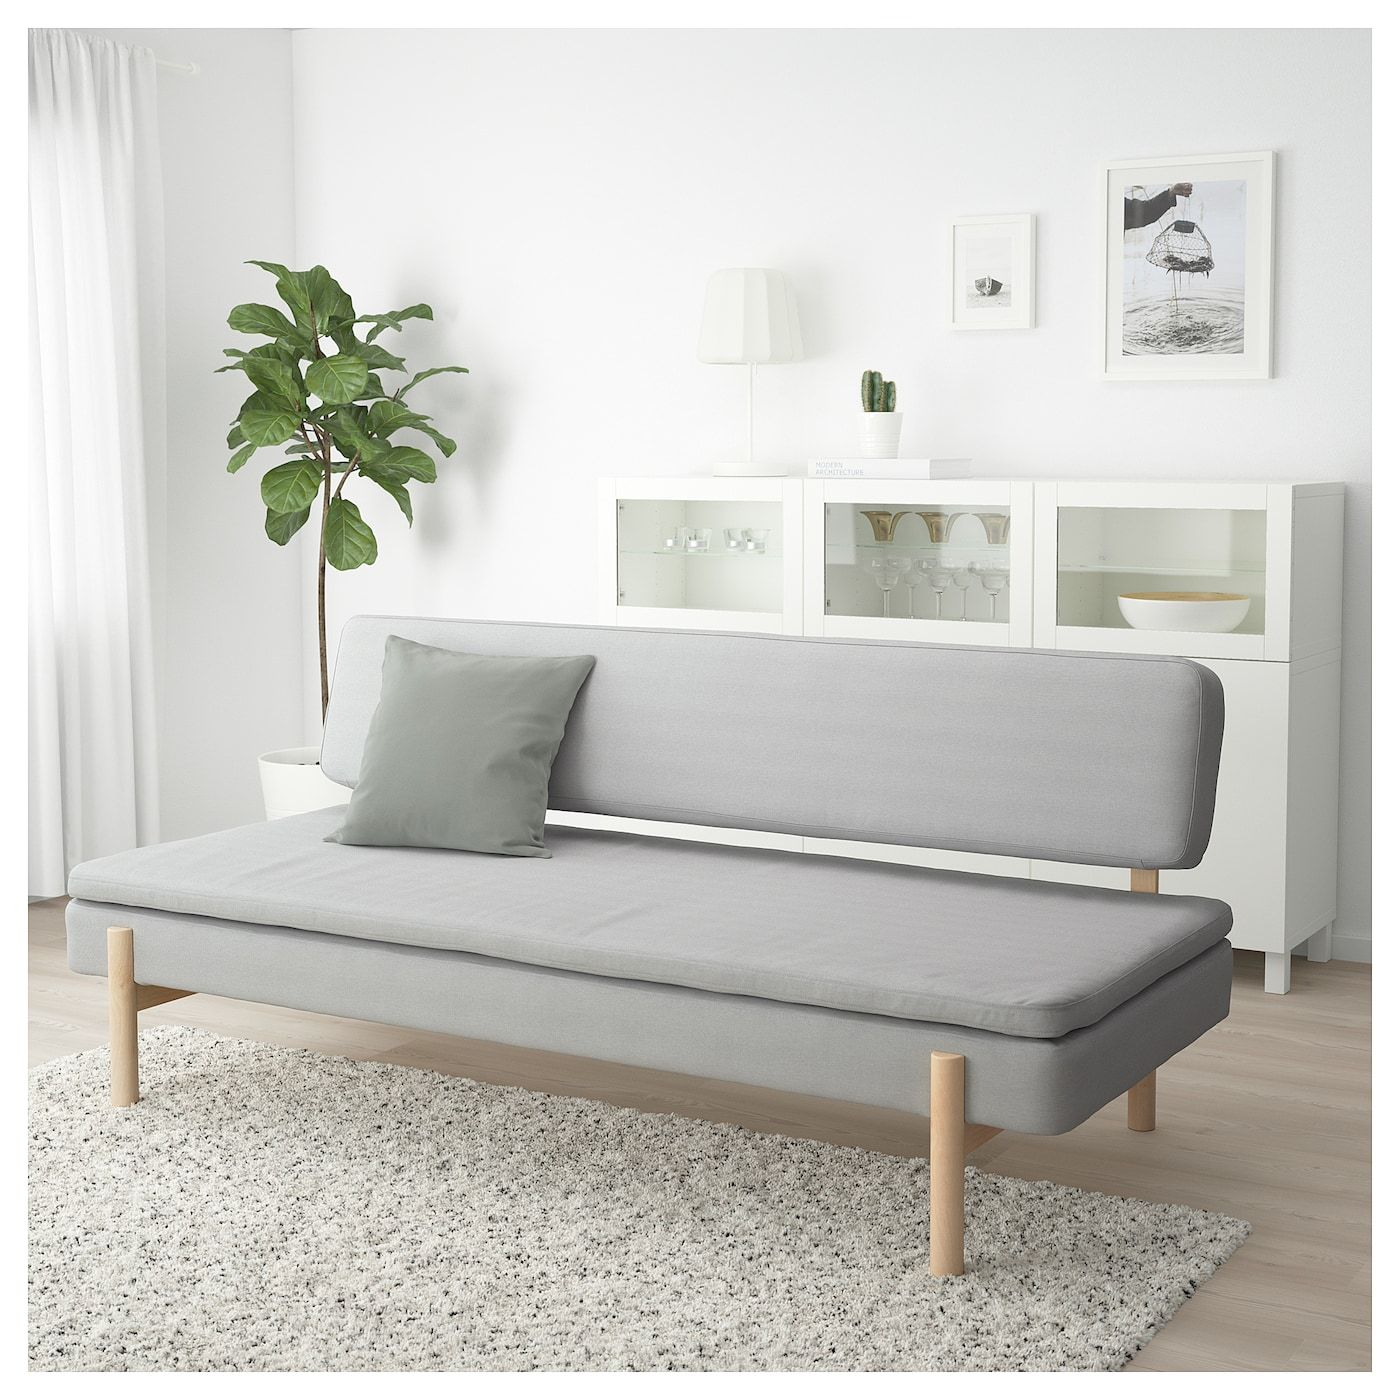 Us Furniture And Home Furnishings Sofa Cama Ikea Sofa Cama